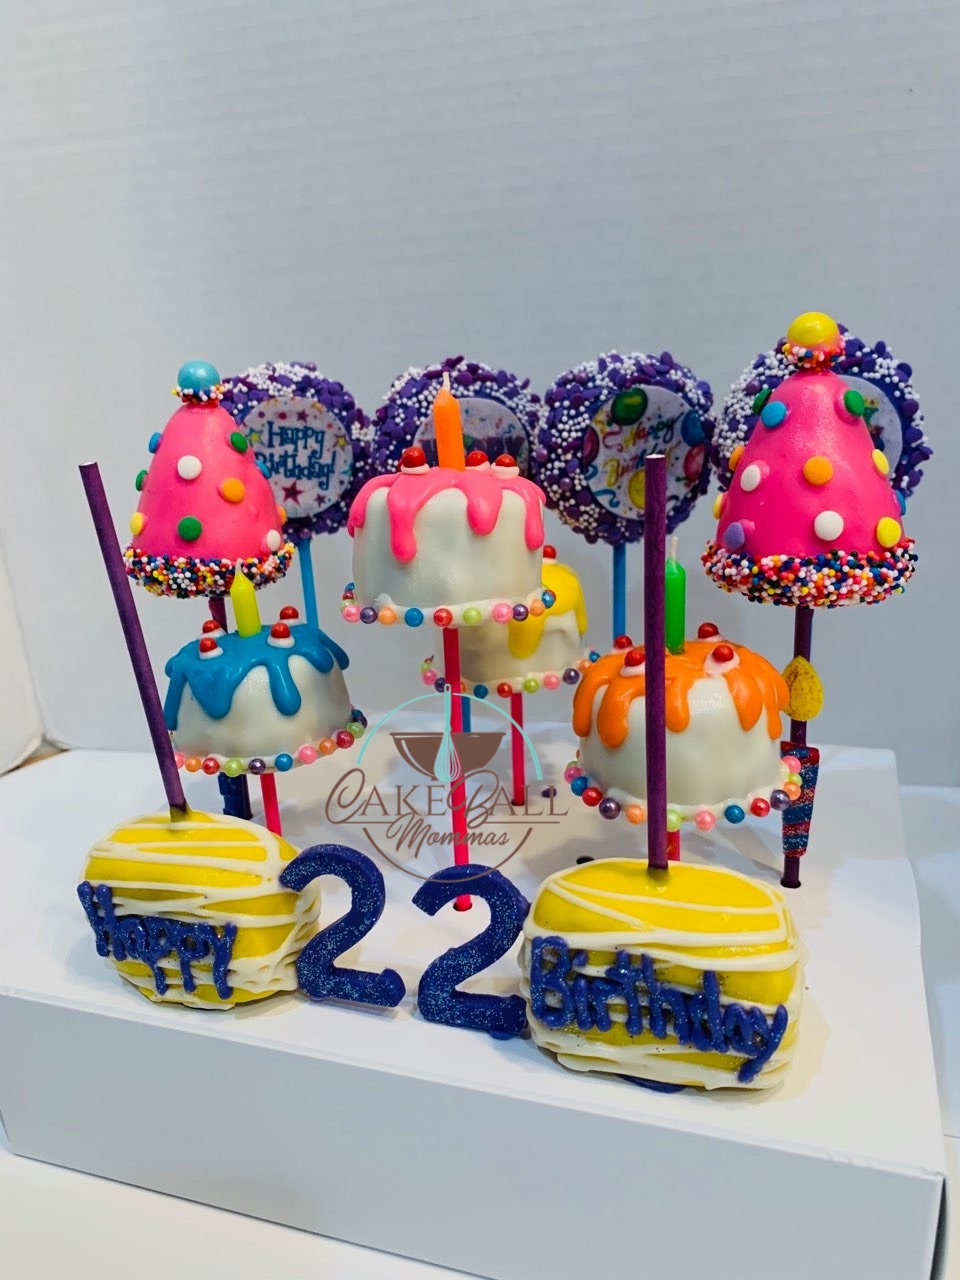 https://0201.nccdn.net/4_2/000/000/008/486/birthday2-960x1280.jpg